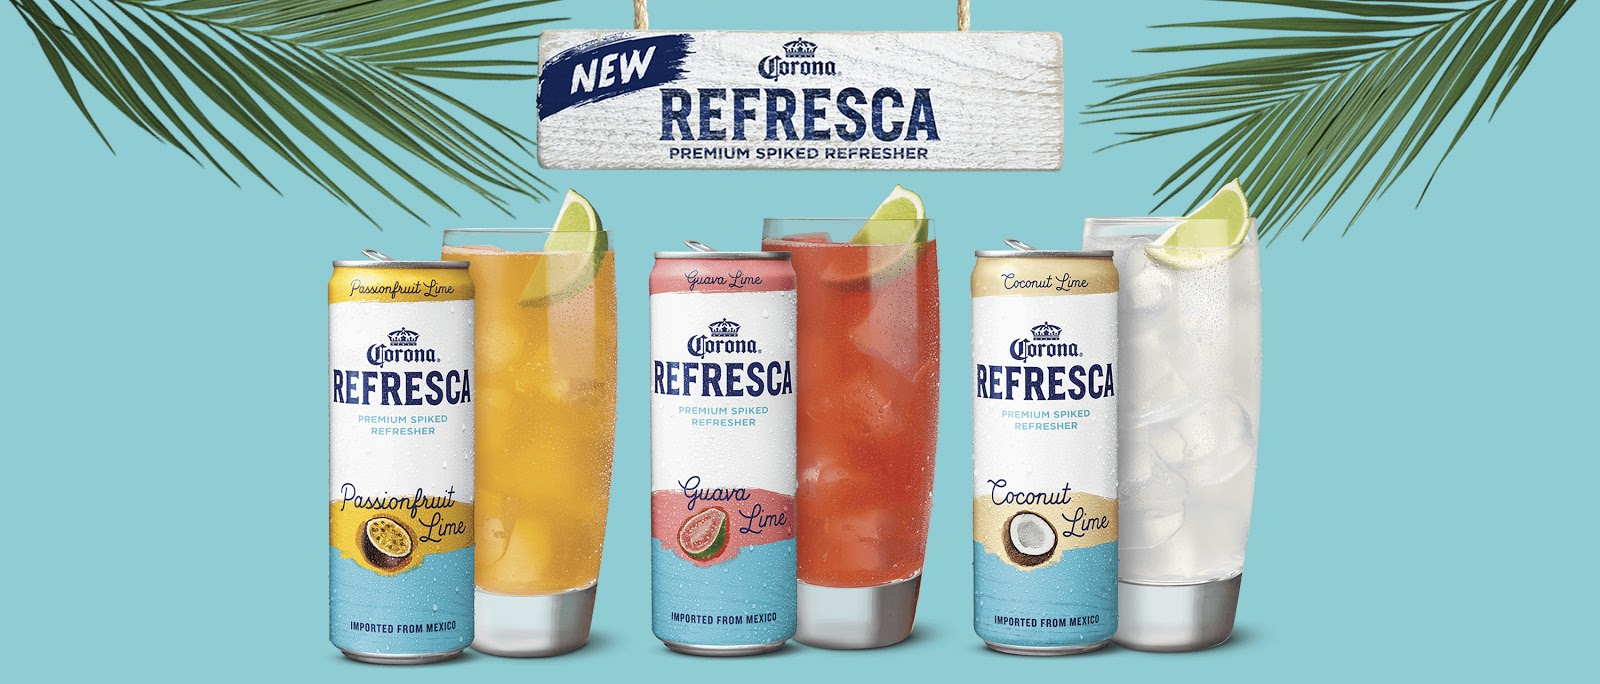 3 Advertising Campaigns to Watch This Summer